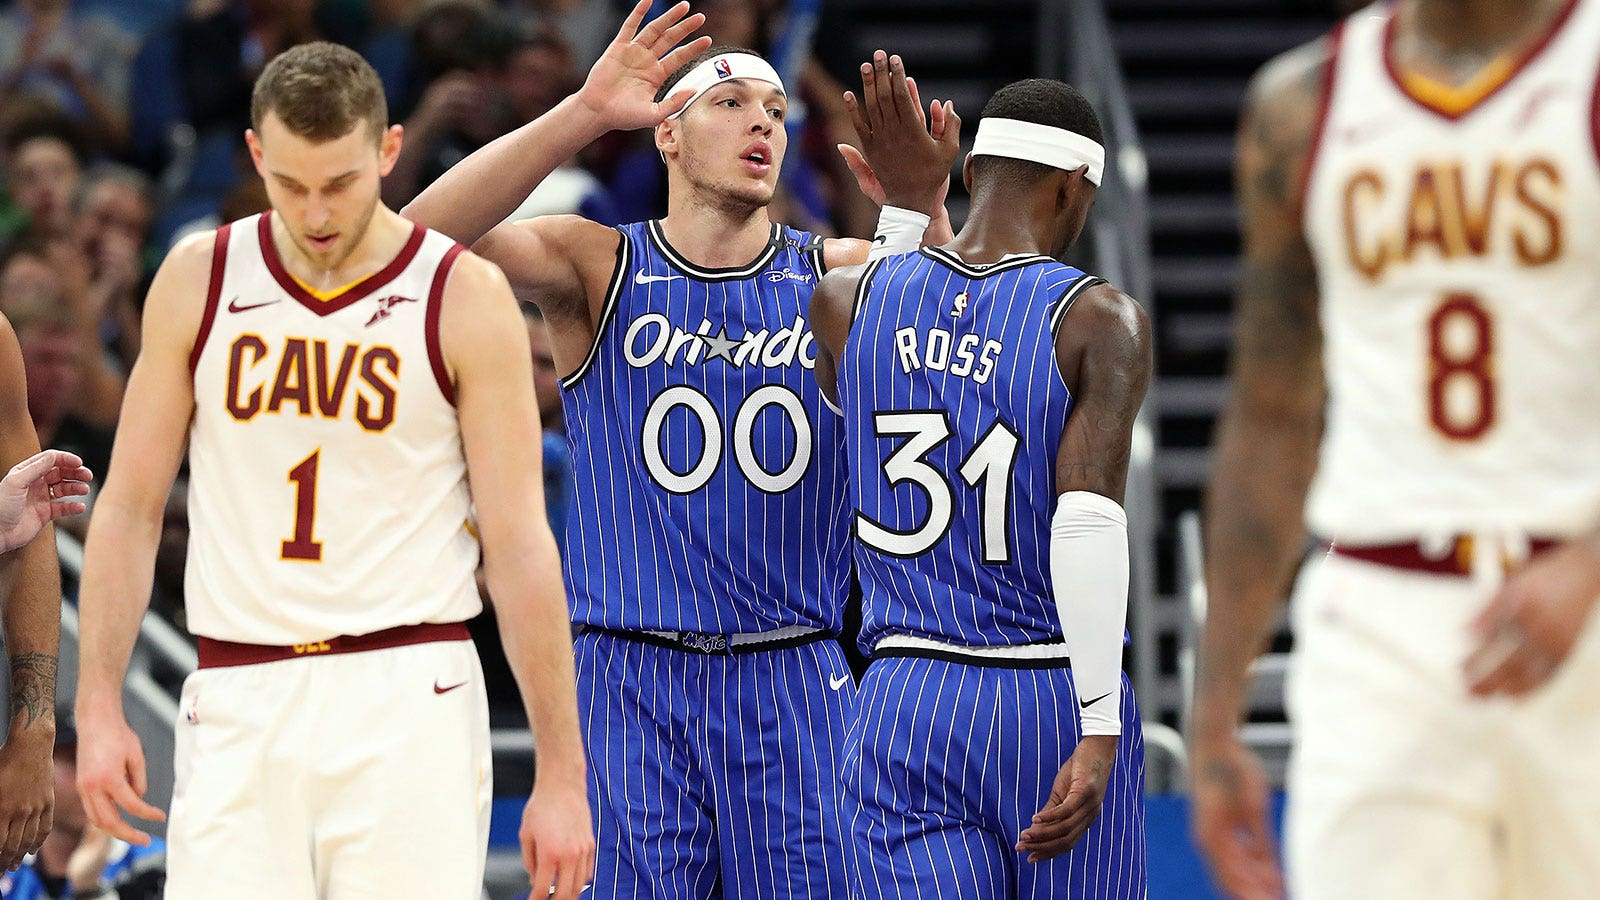 Magic will welcome Cavaliers to town on Oct  23 to begin